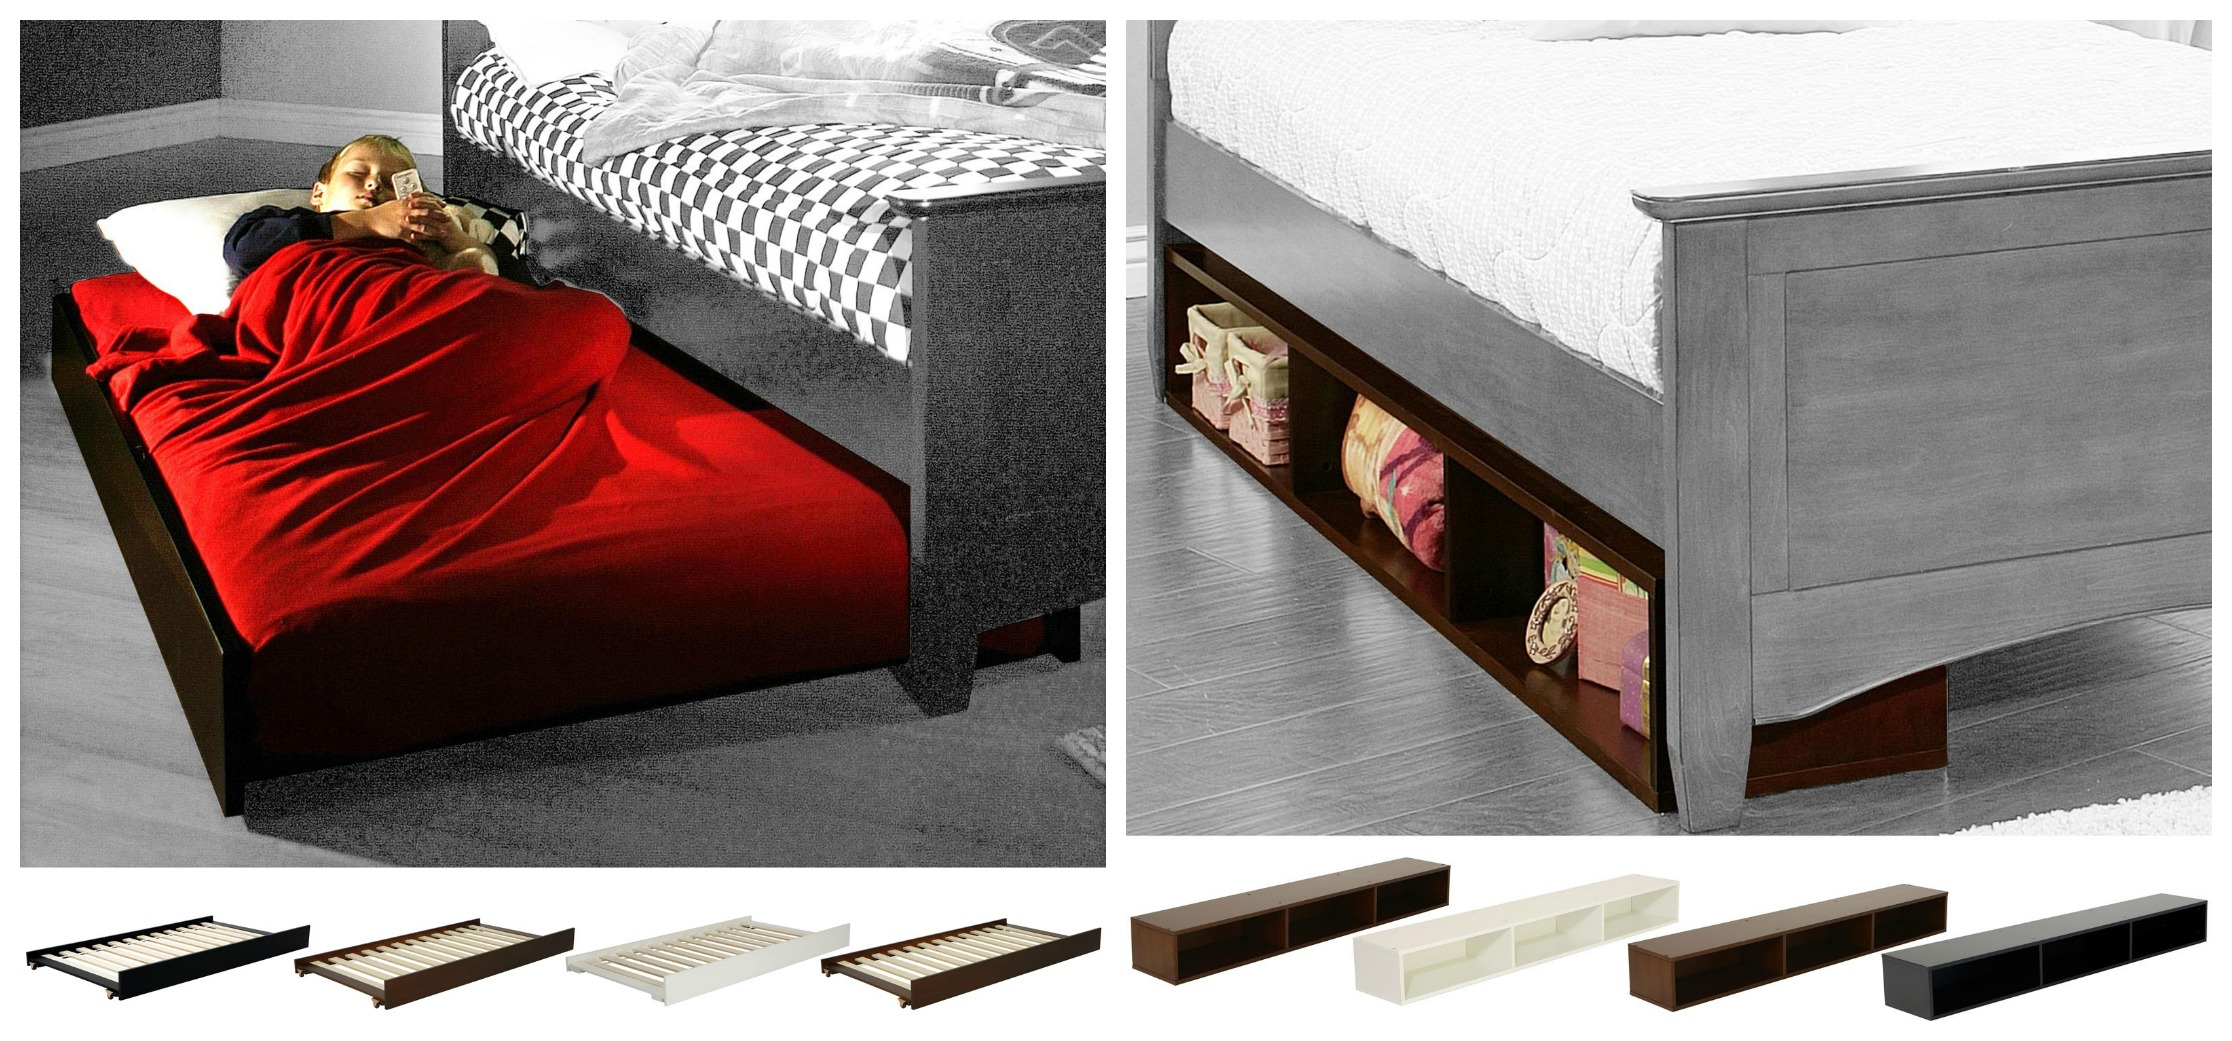 Under the bed accessories